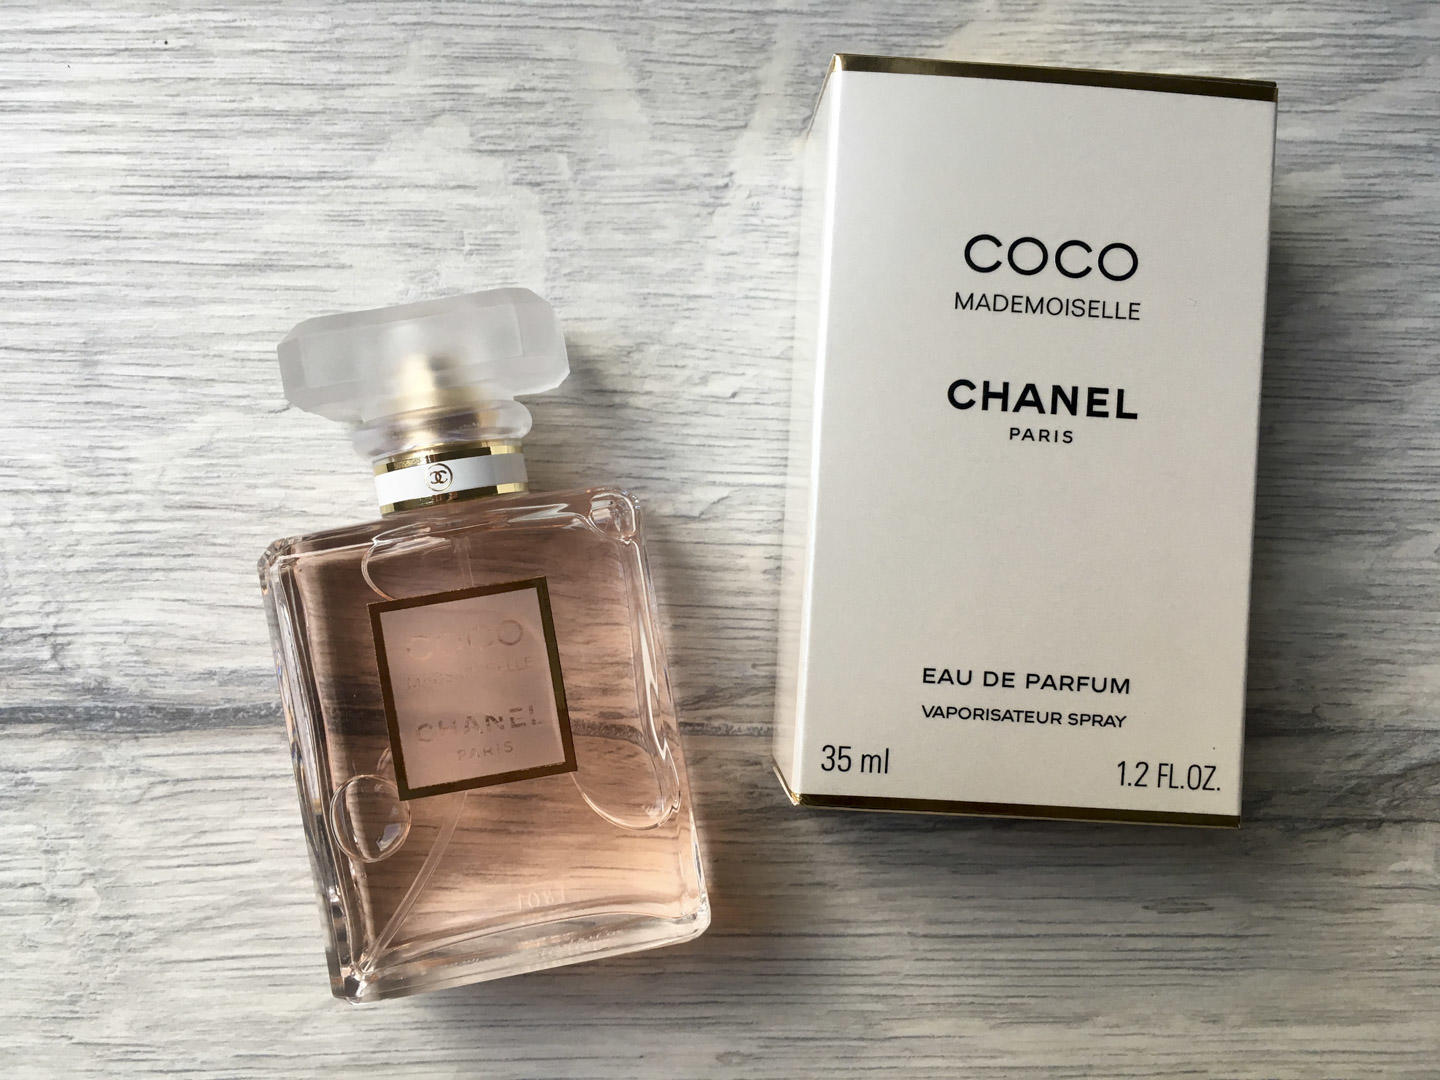 Chanel Coco mademoiselle flat lay style photograph.